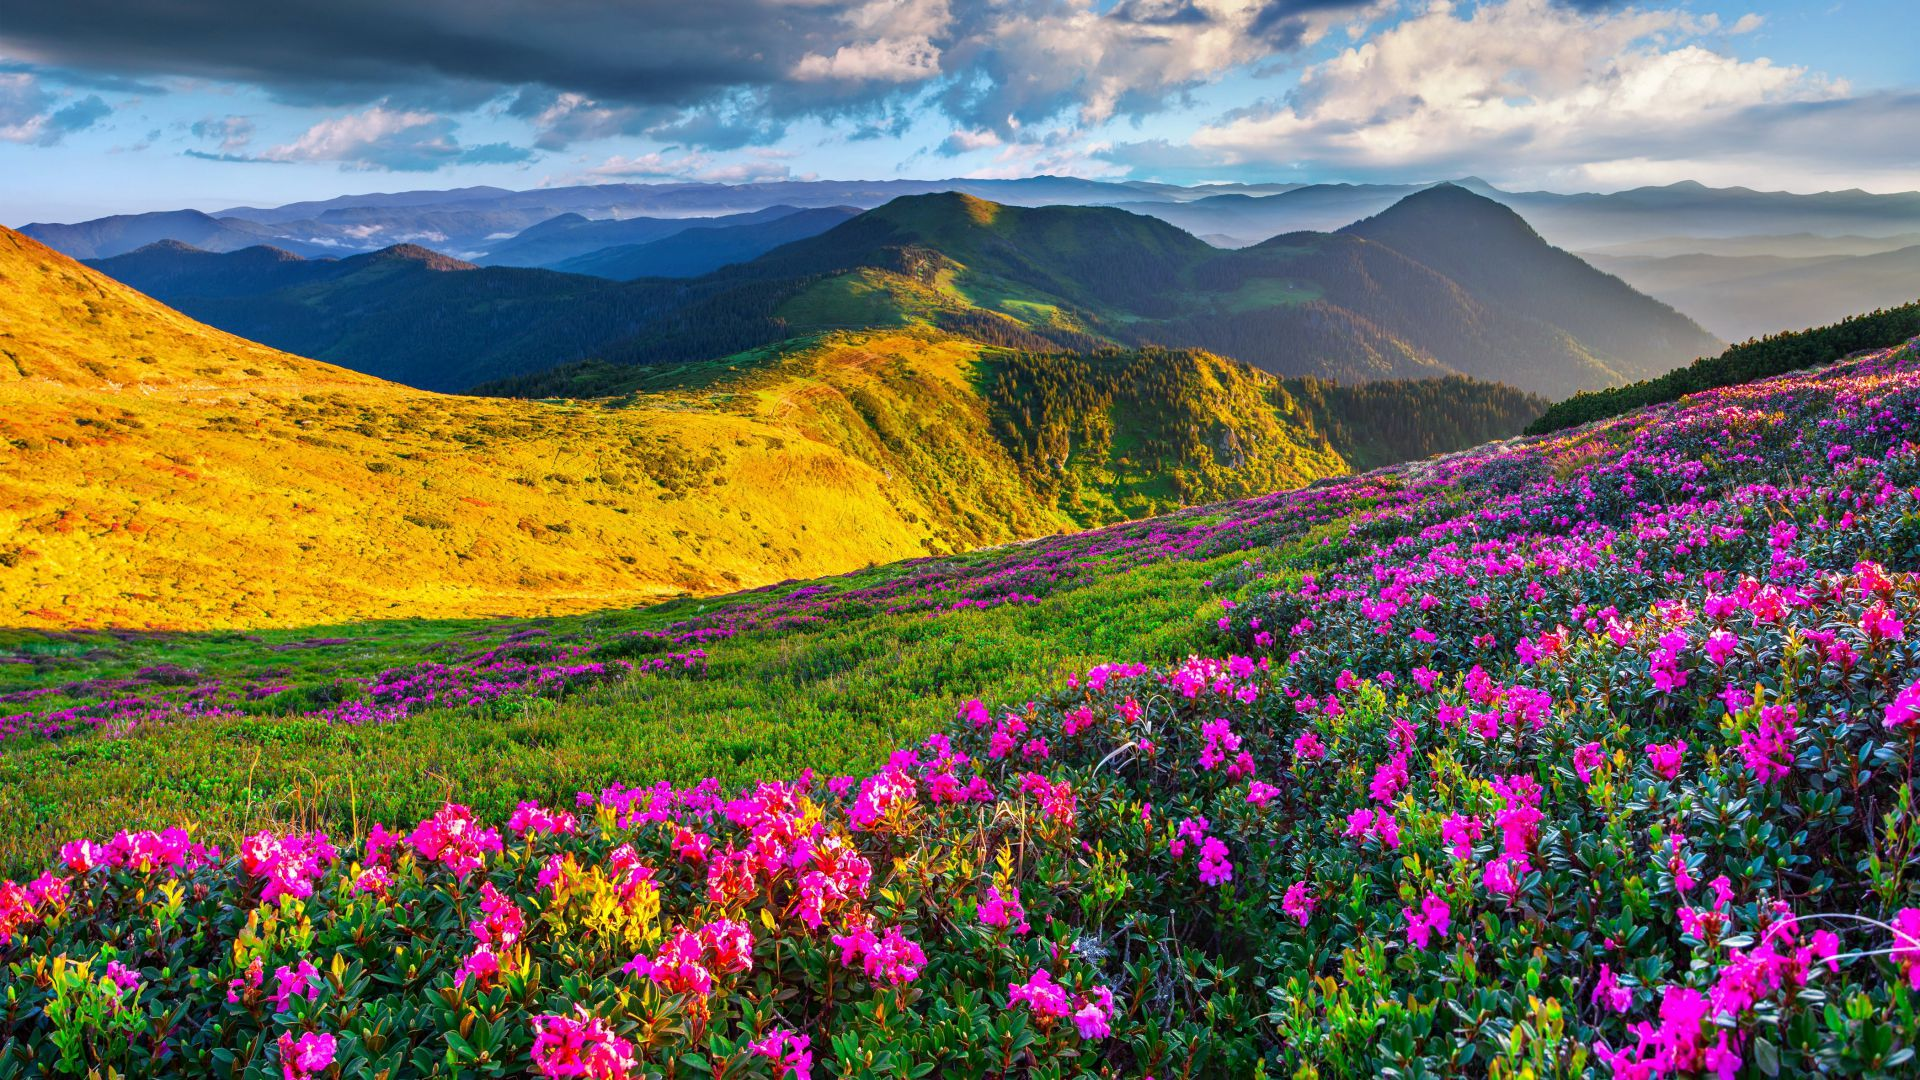 Slovenia, 4k, 5k wallpaper, Alps, meadows, azalea, mountains (horizontal)